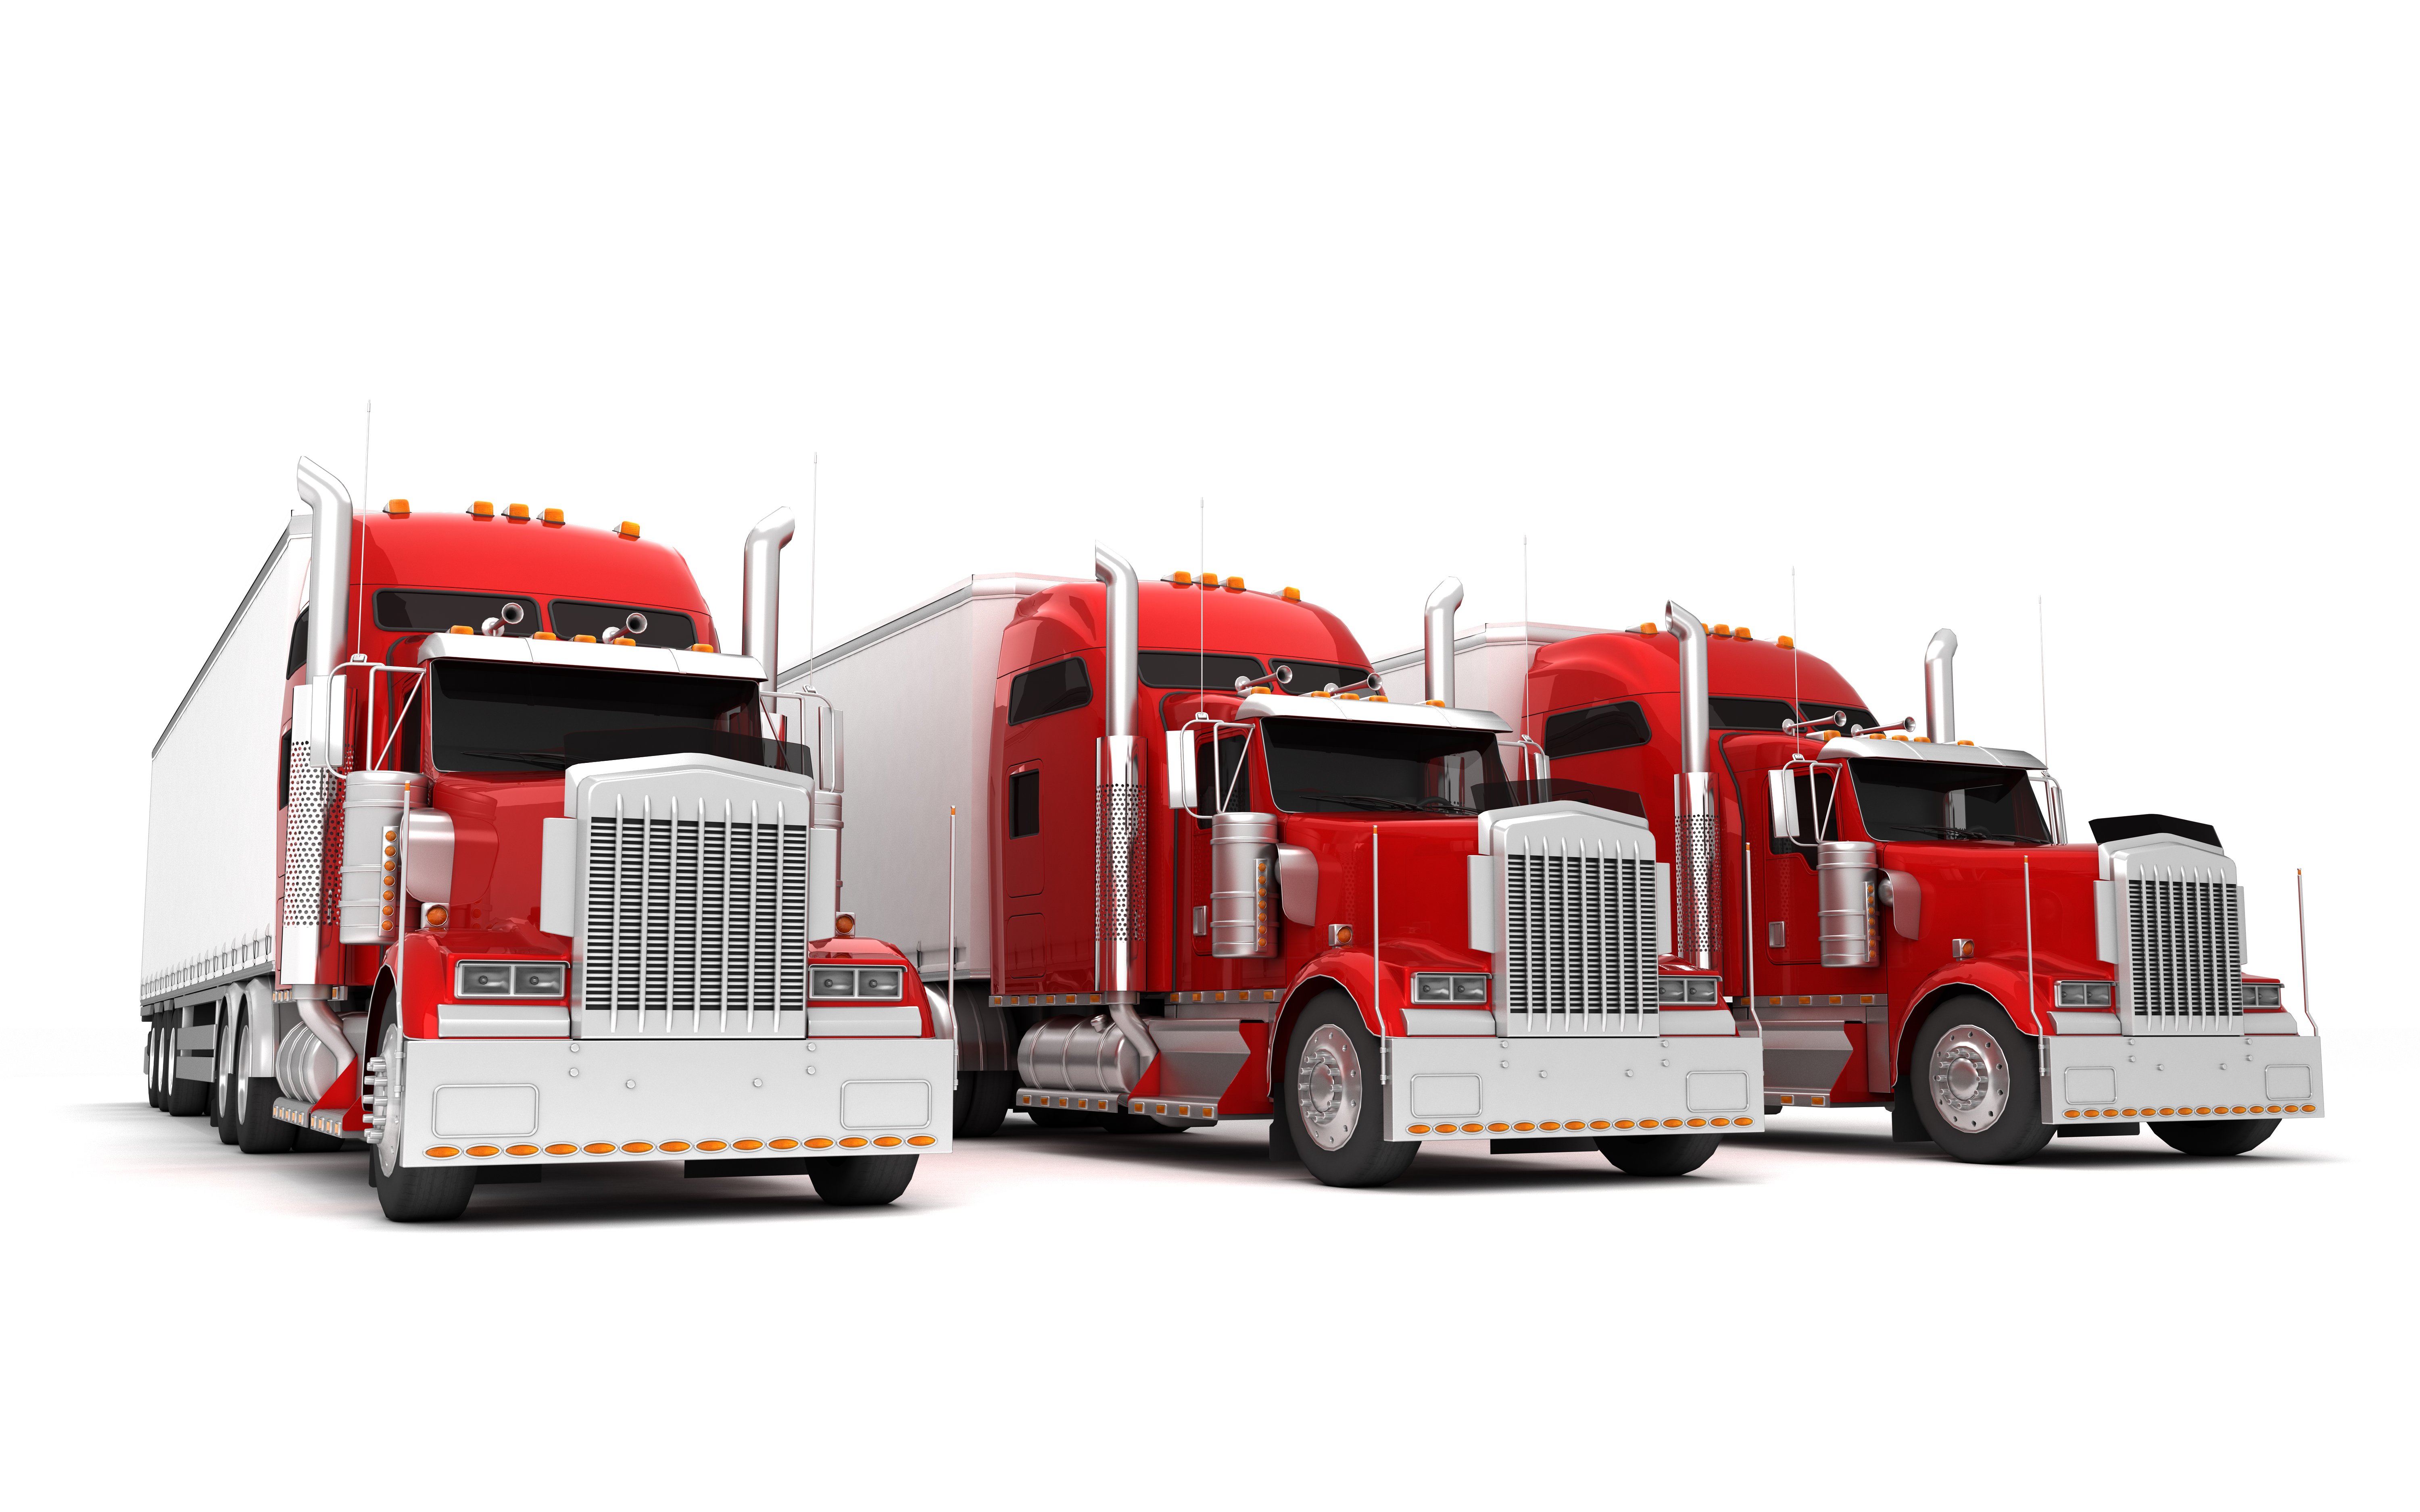 three red semis lined up